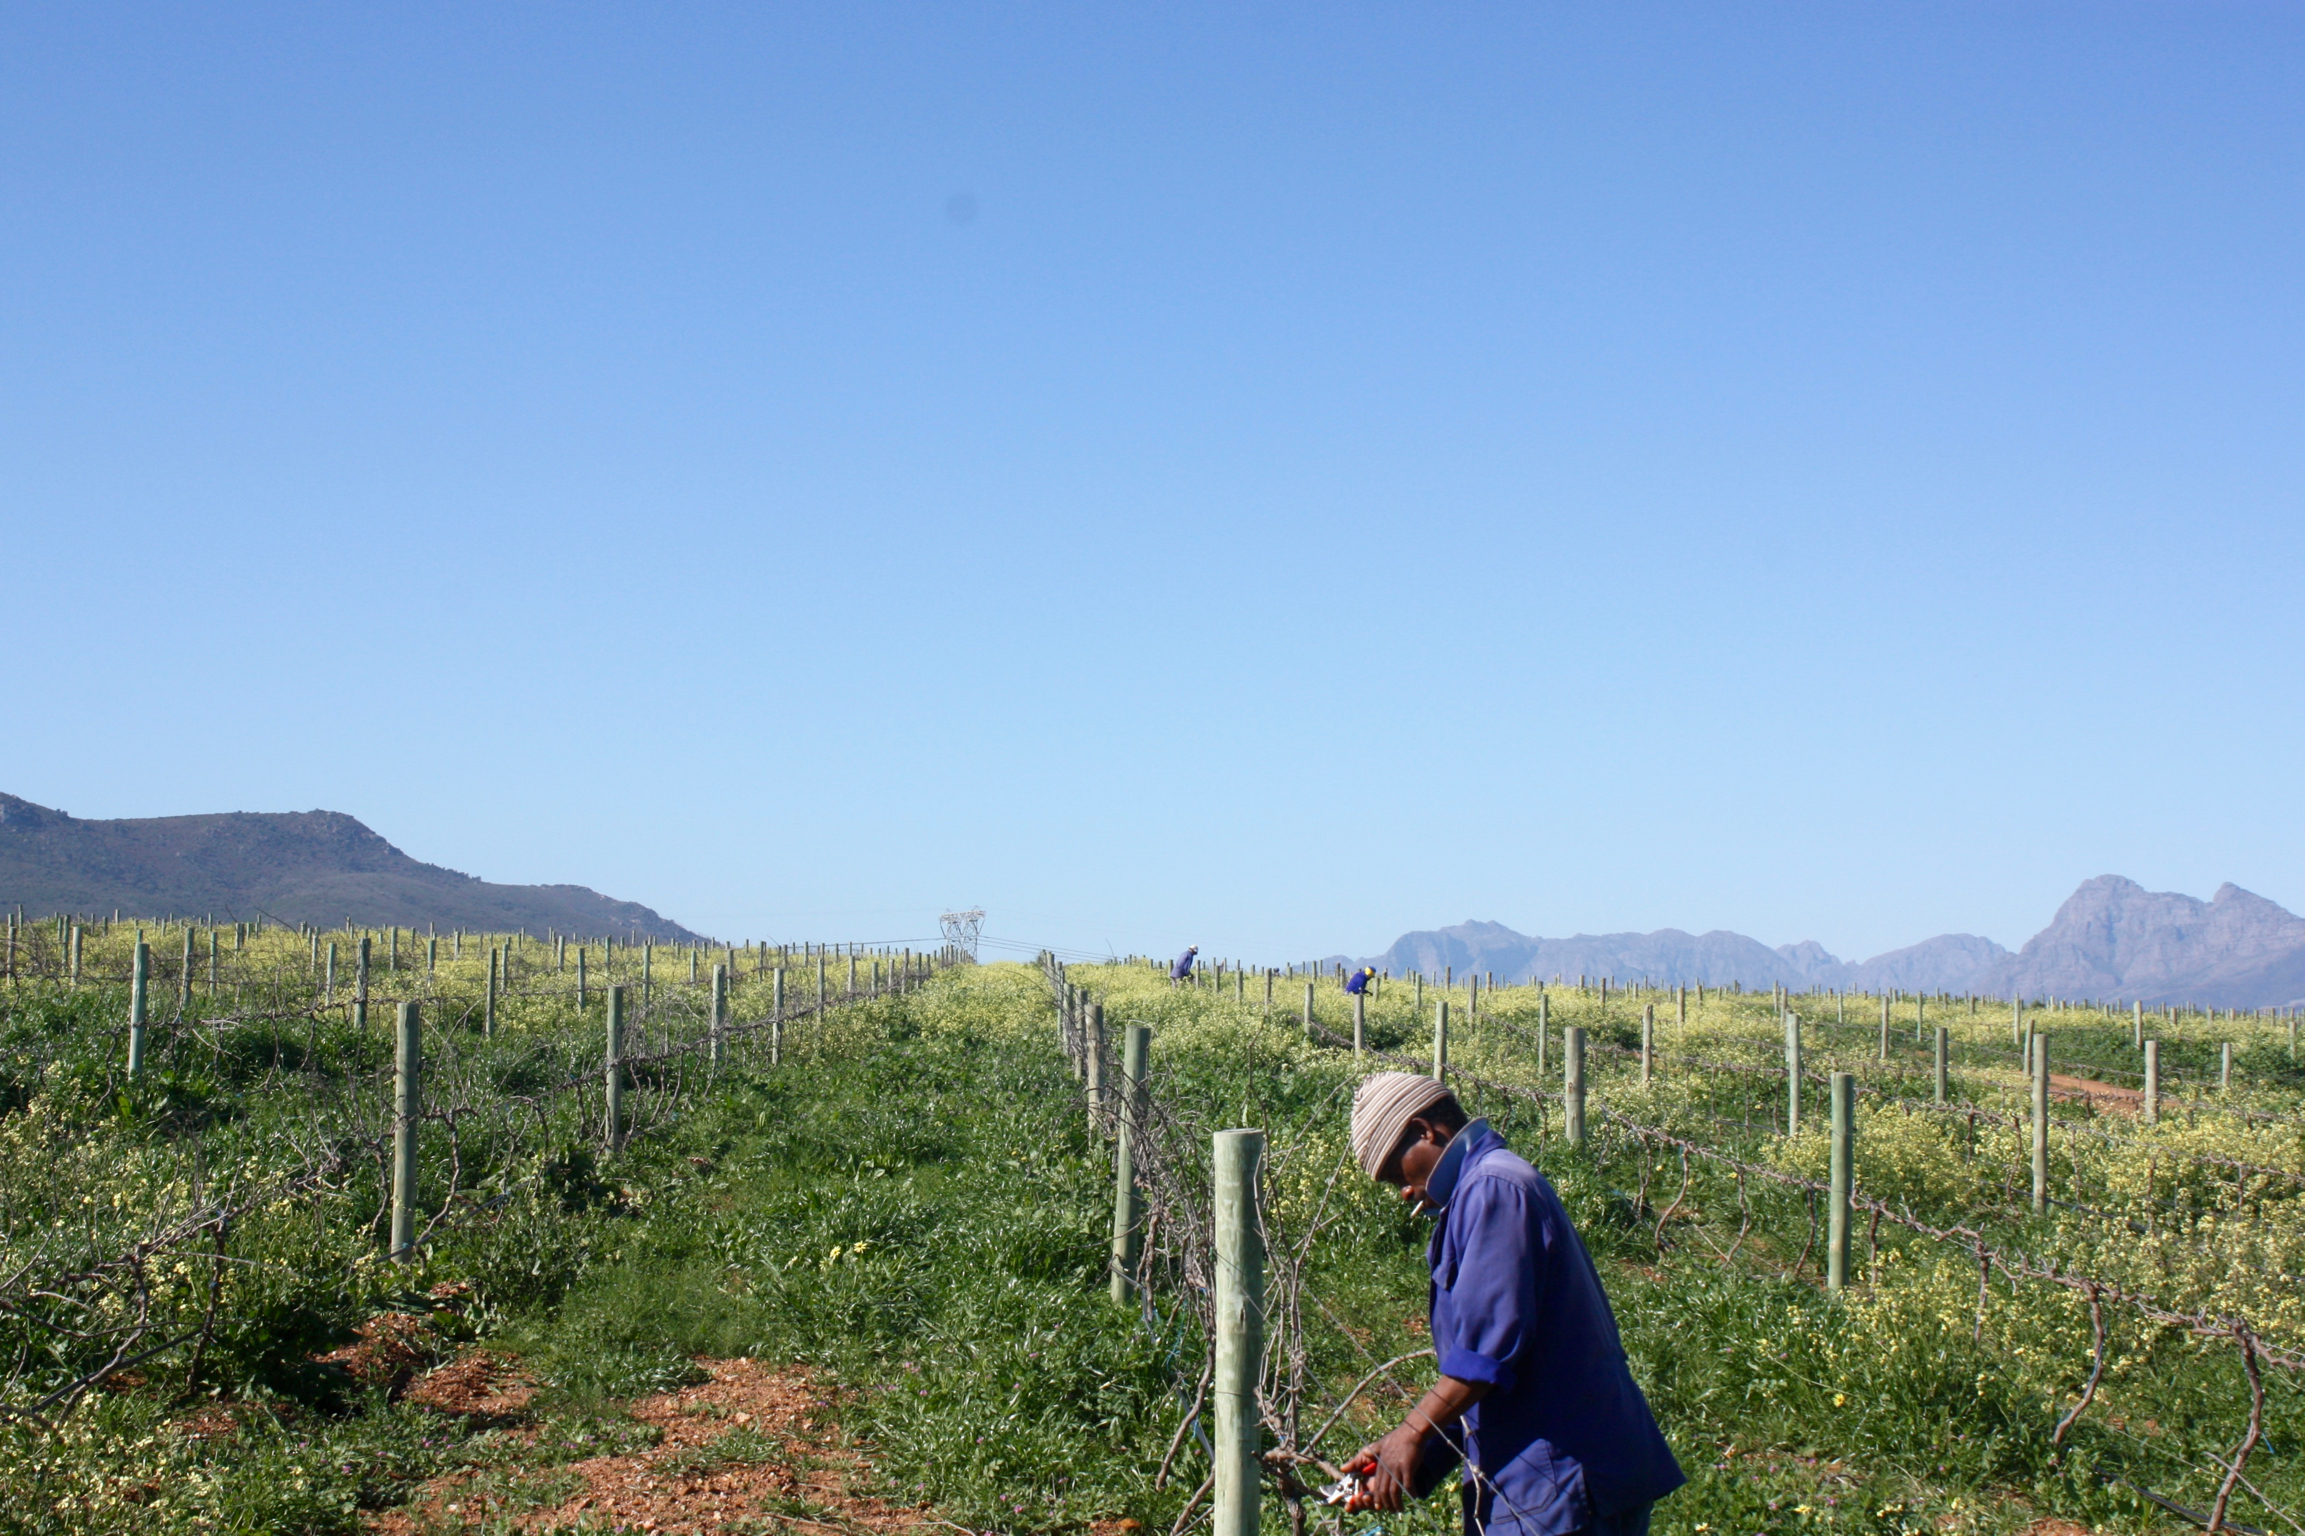 South African growers working on the wine farm